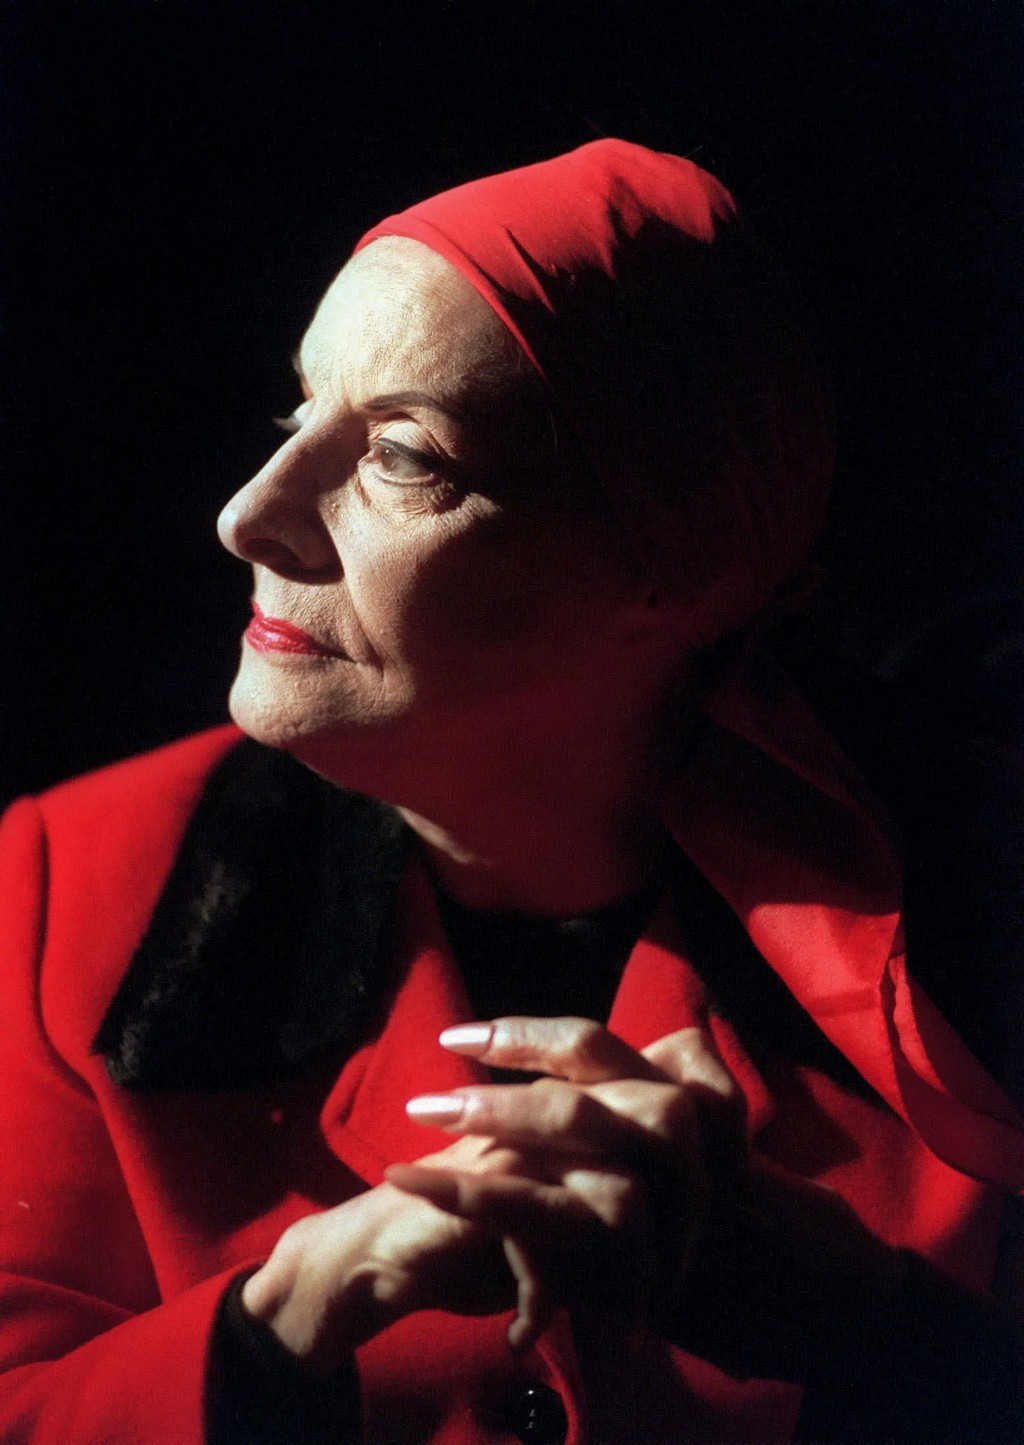 FILE - In this Jan. 27, 1998, file photo, Alicia Alonso, founder of the Ballet Nacional de Cuba, listens during an interview in New York. Cuba's natio...